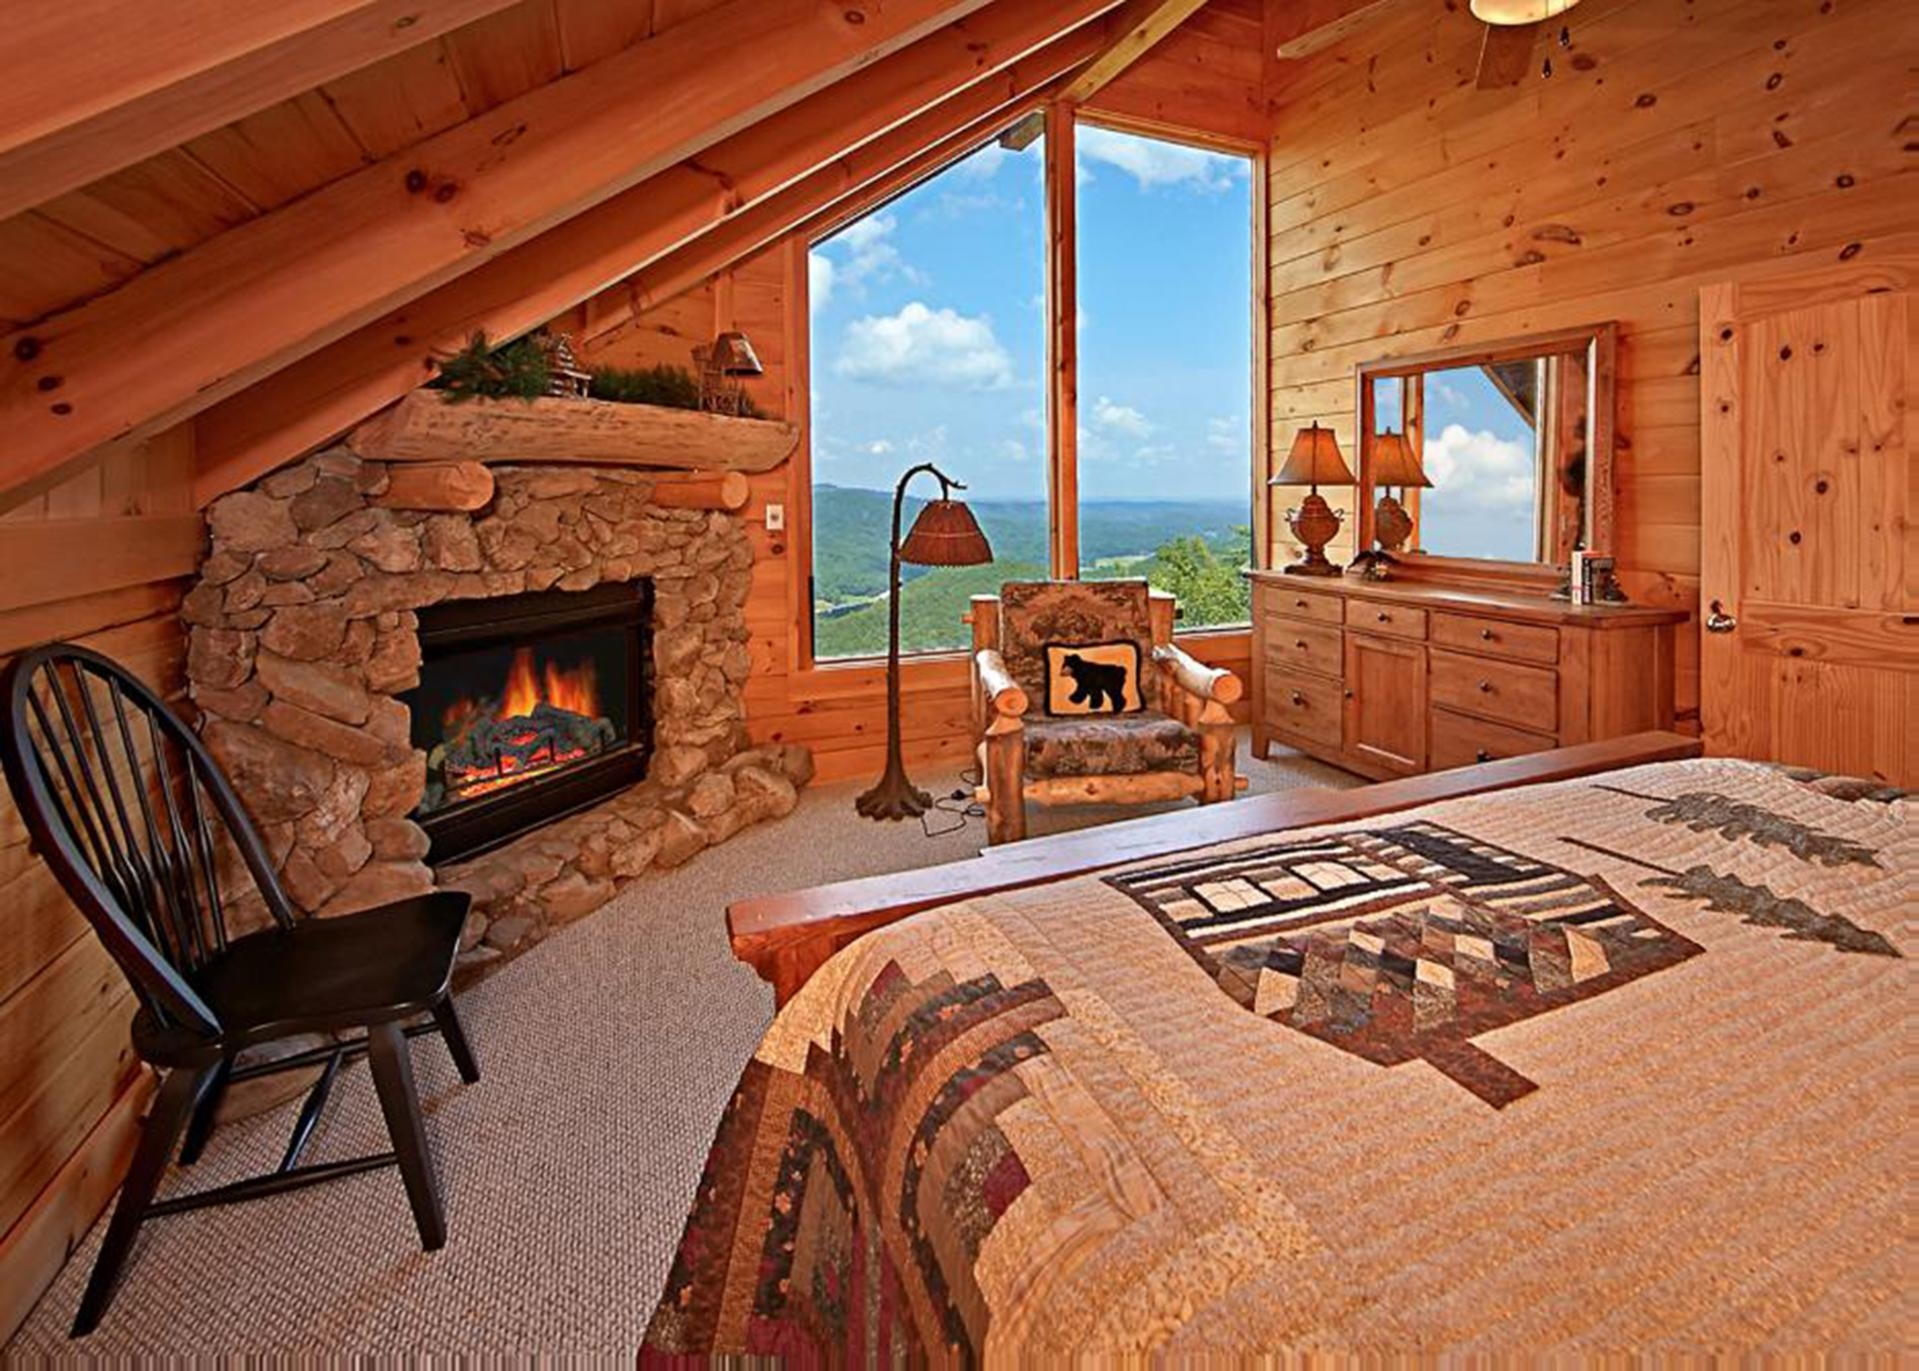 Wake up to beautiful views or enjoy a cozy sitting area by the fire.